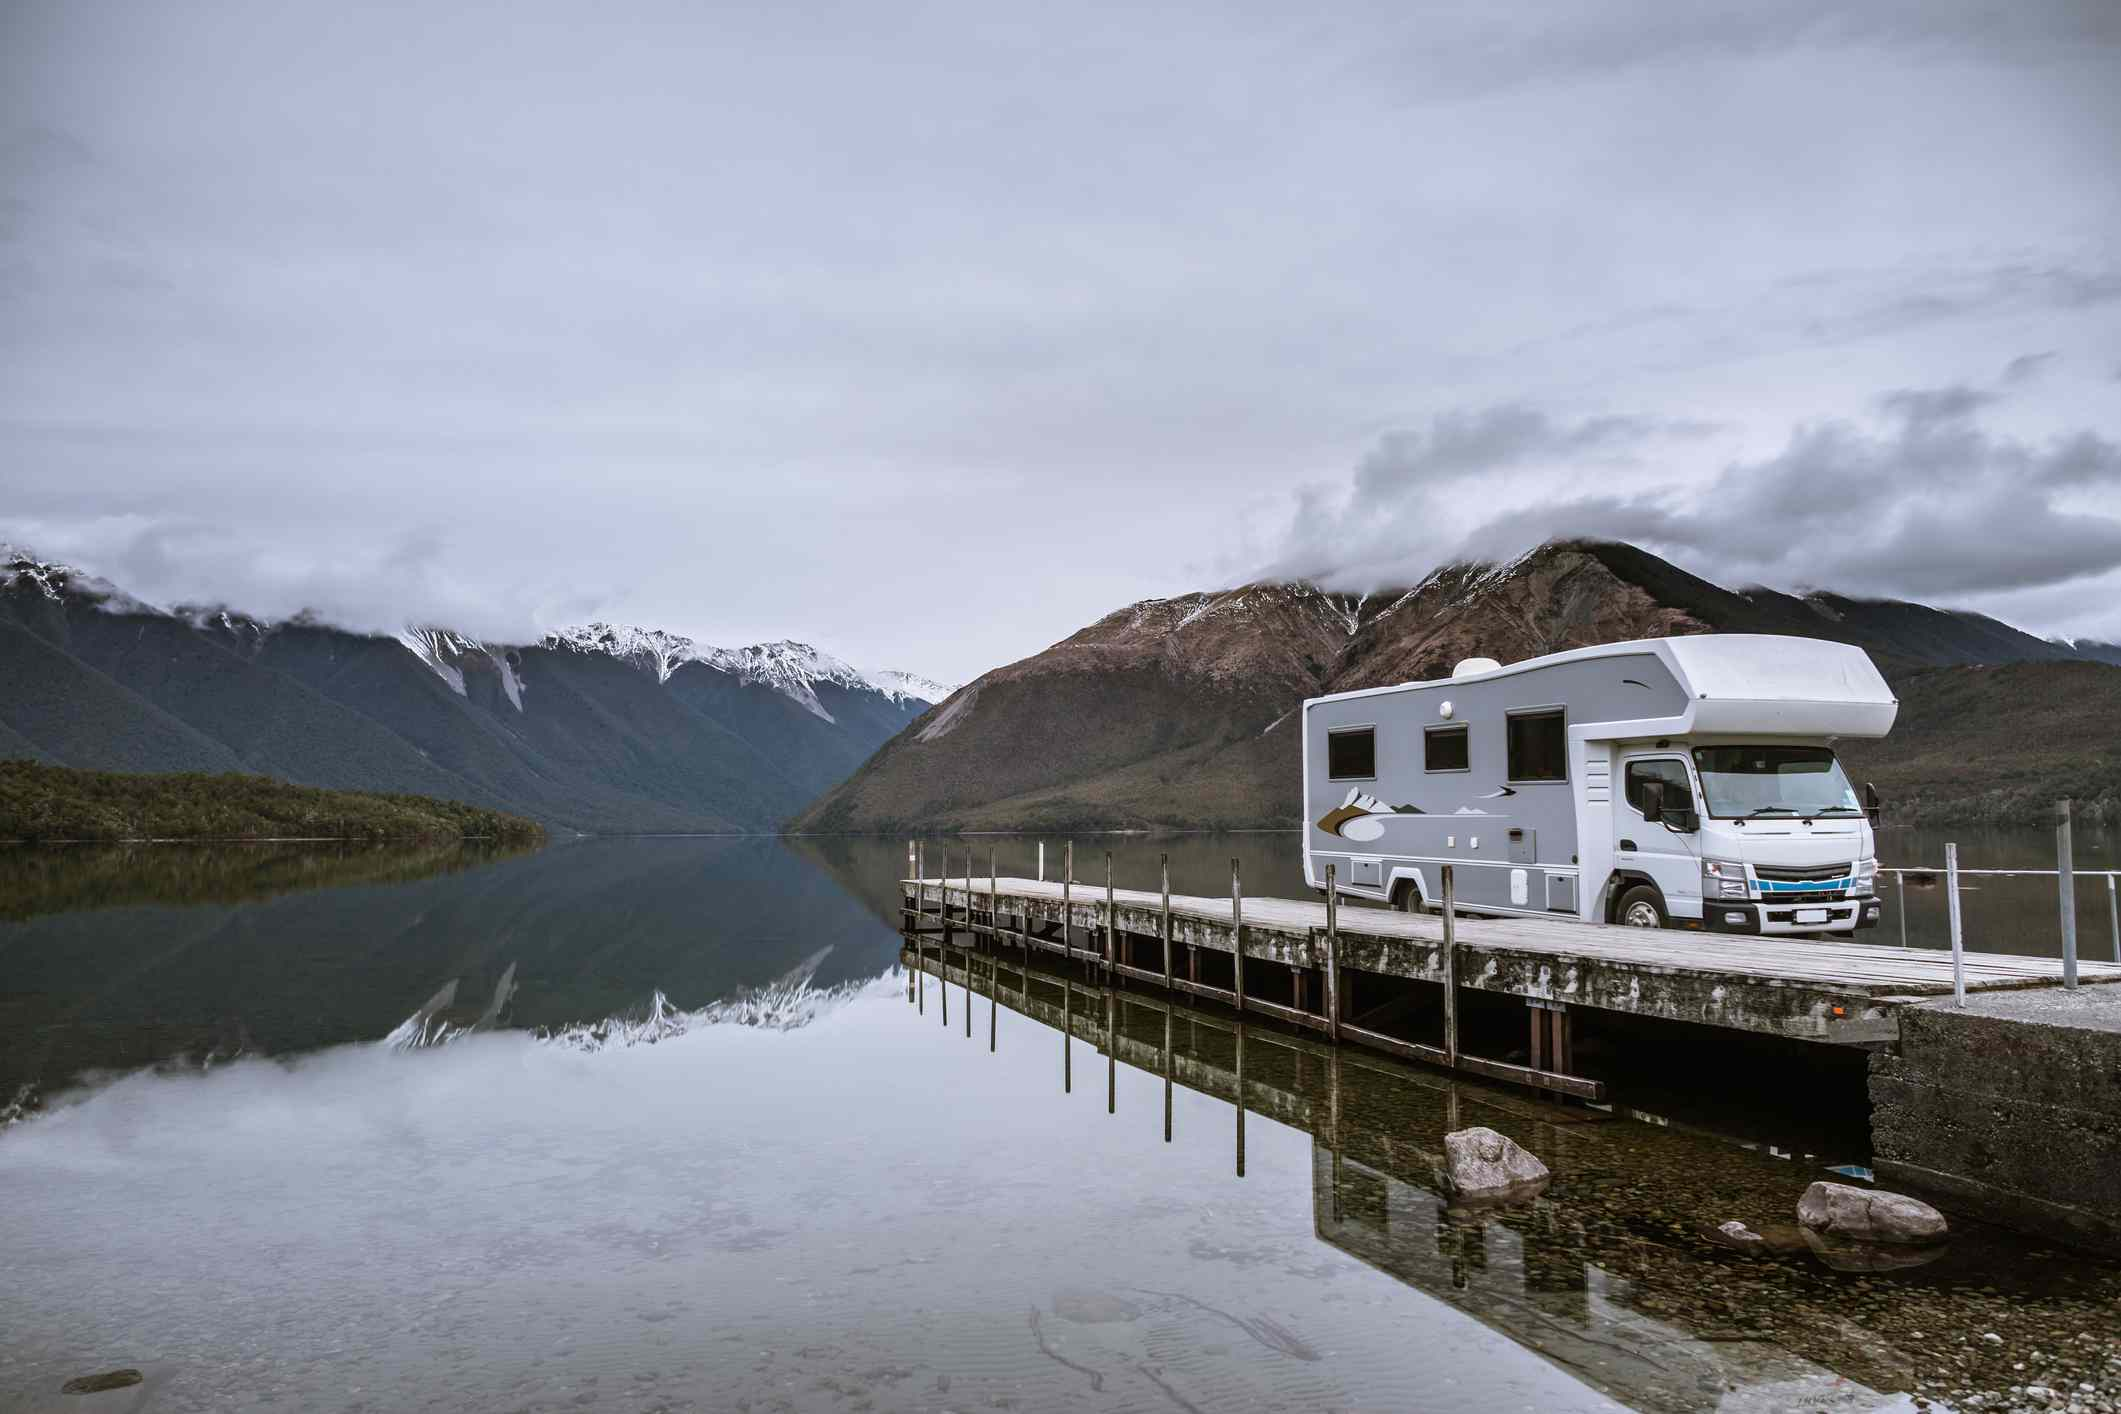 large RV parked on a jetty in a lake with snow-capped mountains in background